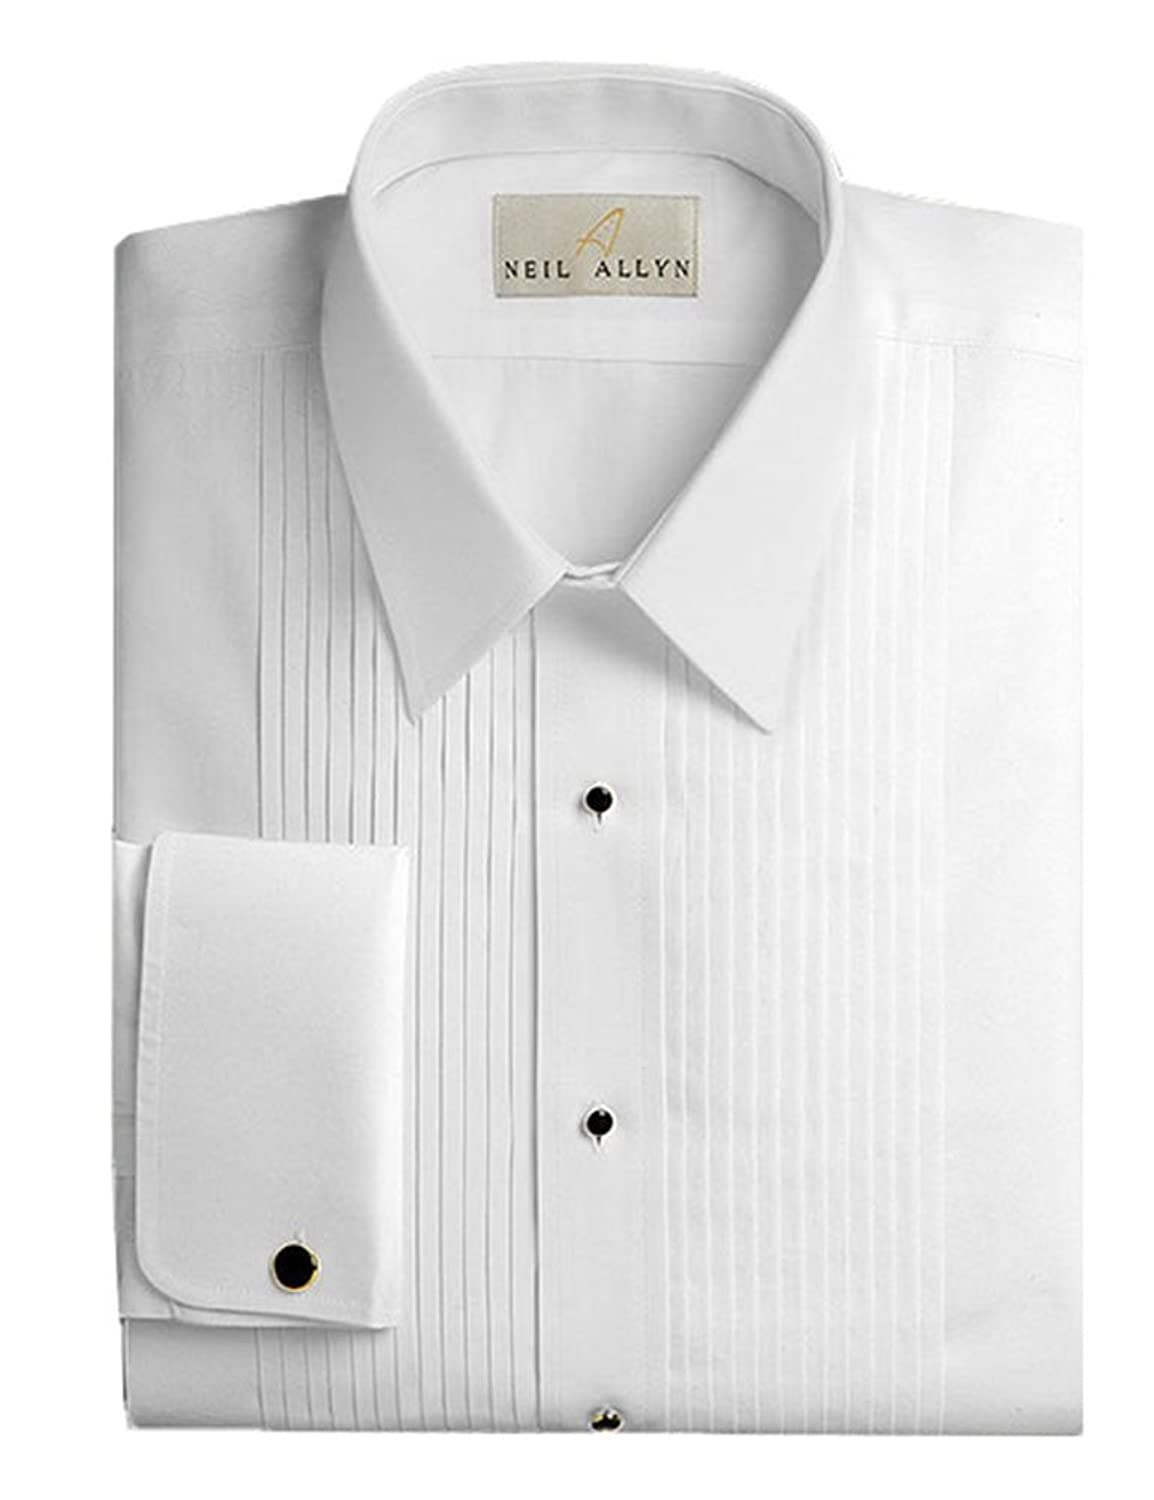 Neil Allyn Men s Tuxedo Shirt- Tuxedo Shirt